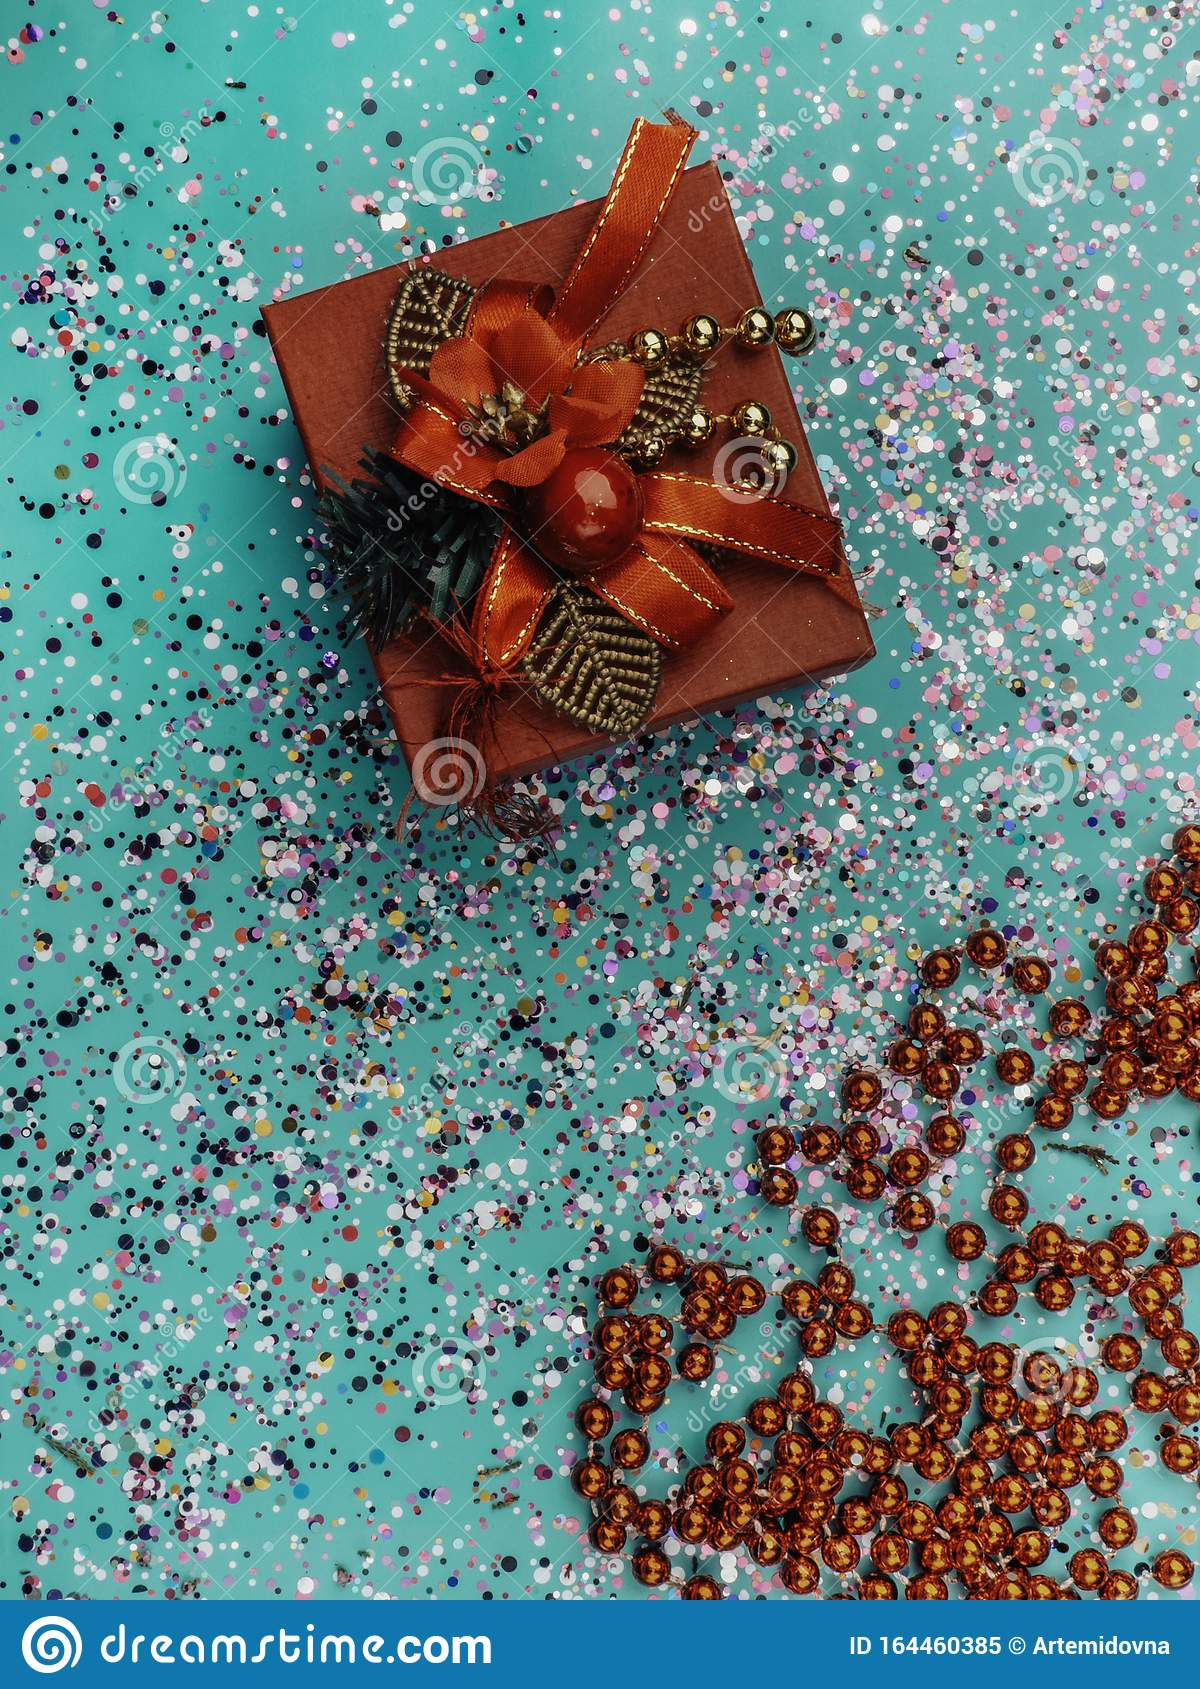 Red Gift Box With Red Decoration On Turquoise Background With Colorful Glitter Cones Holiday Concept Topo View Stock Image Image Of Love Holiday 164460385